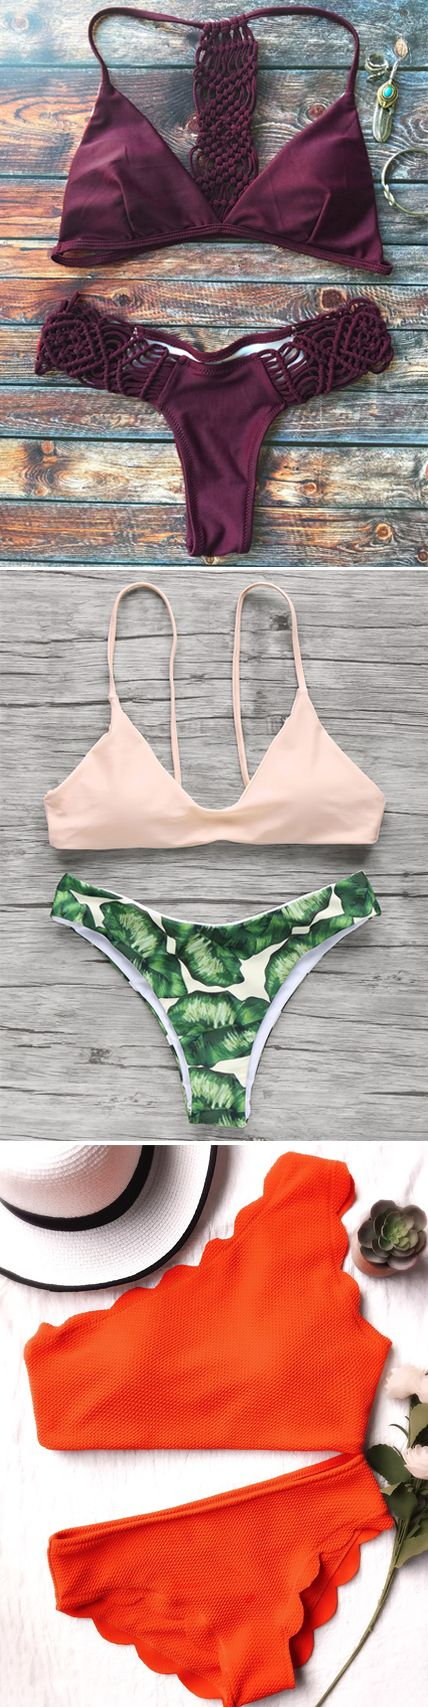 Which one is your style? Swimwear in Zaful |swimsuits,bathing suit,bikini,bikini set,one pieces,swimwear 2017,beach outfit,bikinis,beach,beach wear,Hawaii,summer bikinis | #Bikini